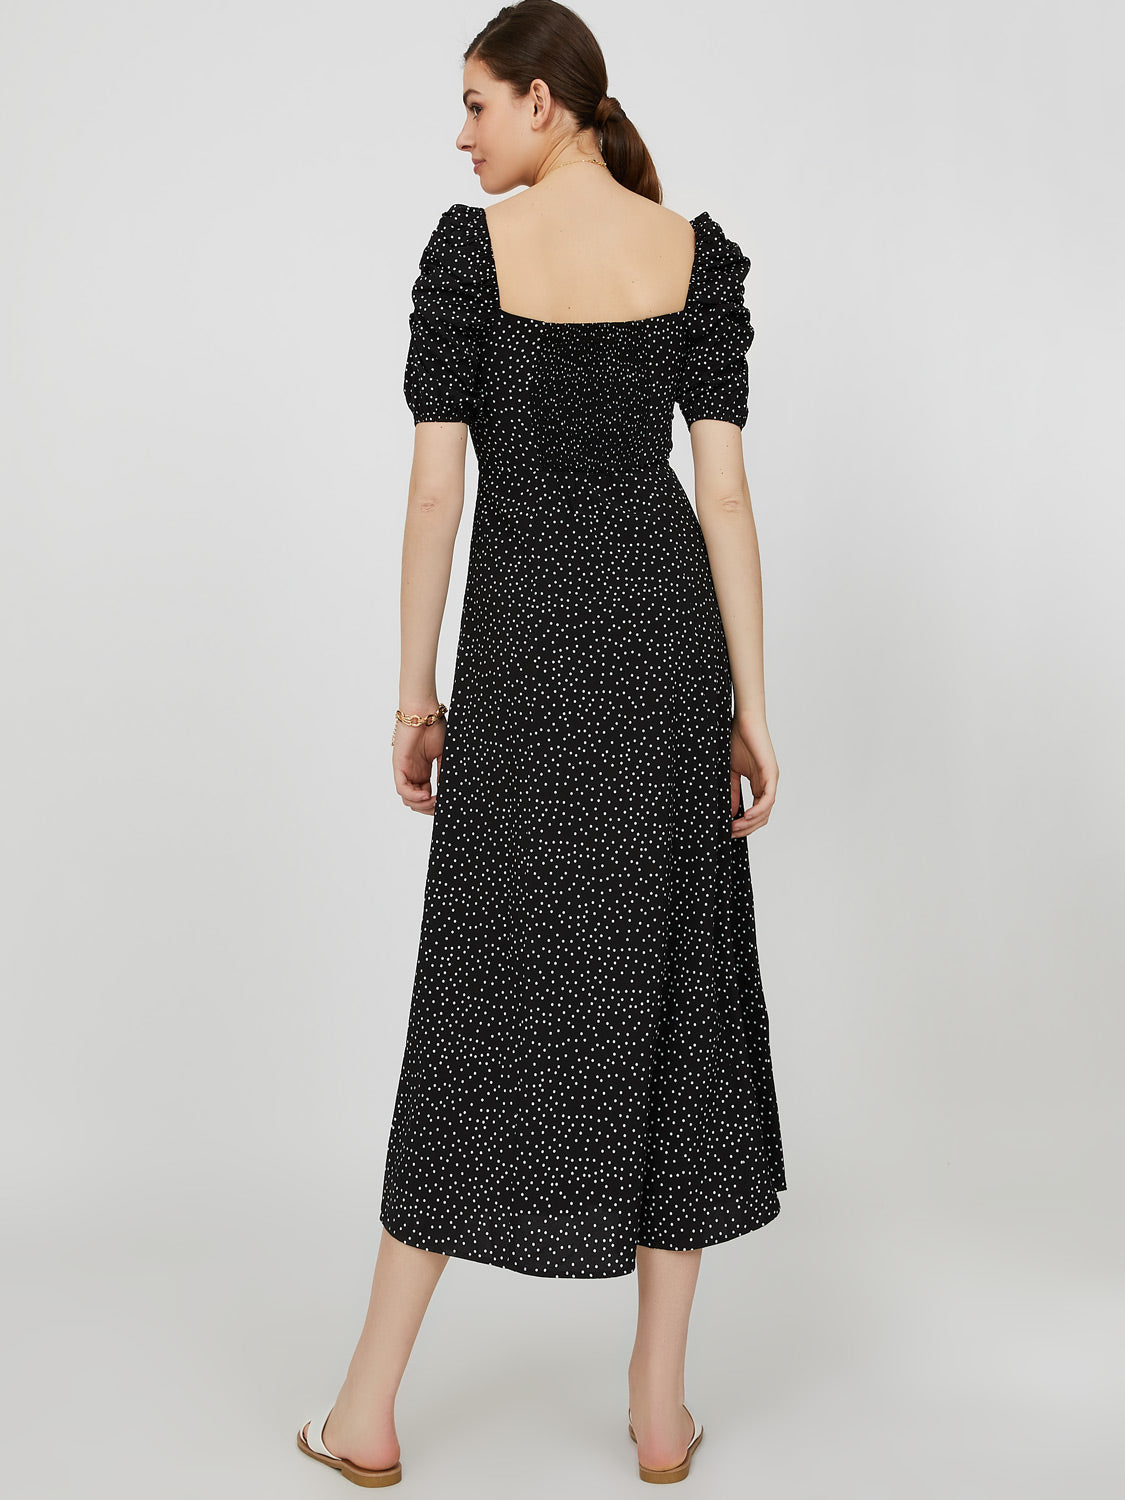 Elbow Puff Sleeve Square Neck Dot Midi Dress